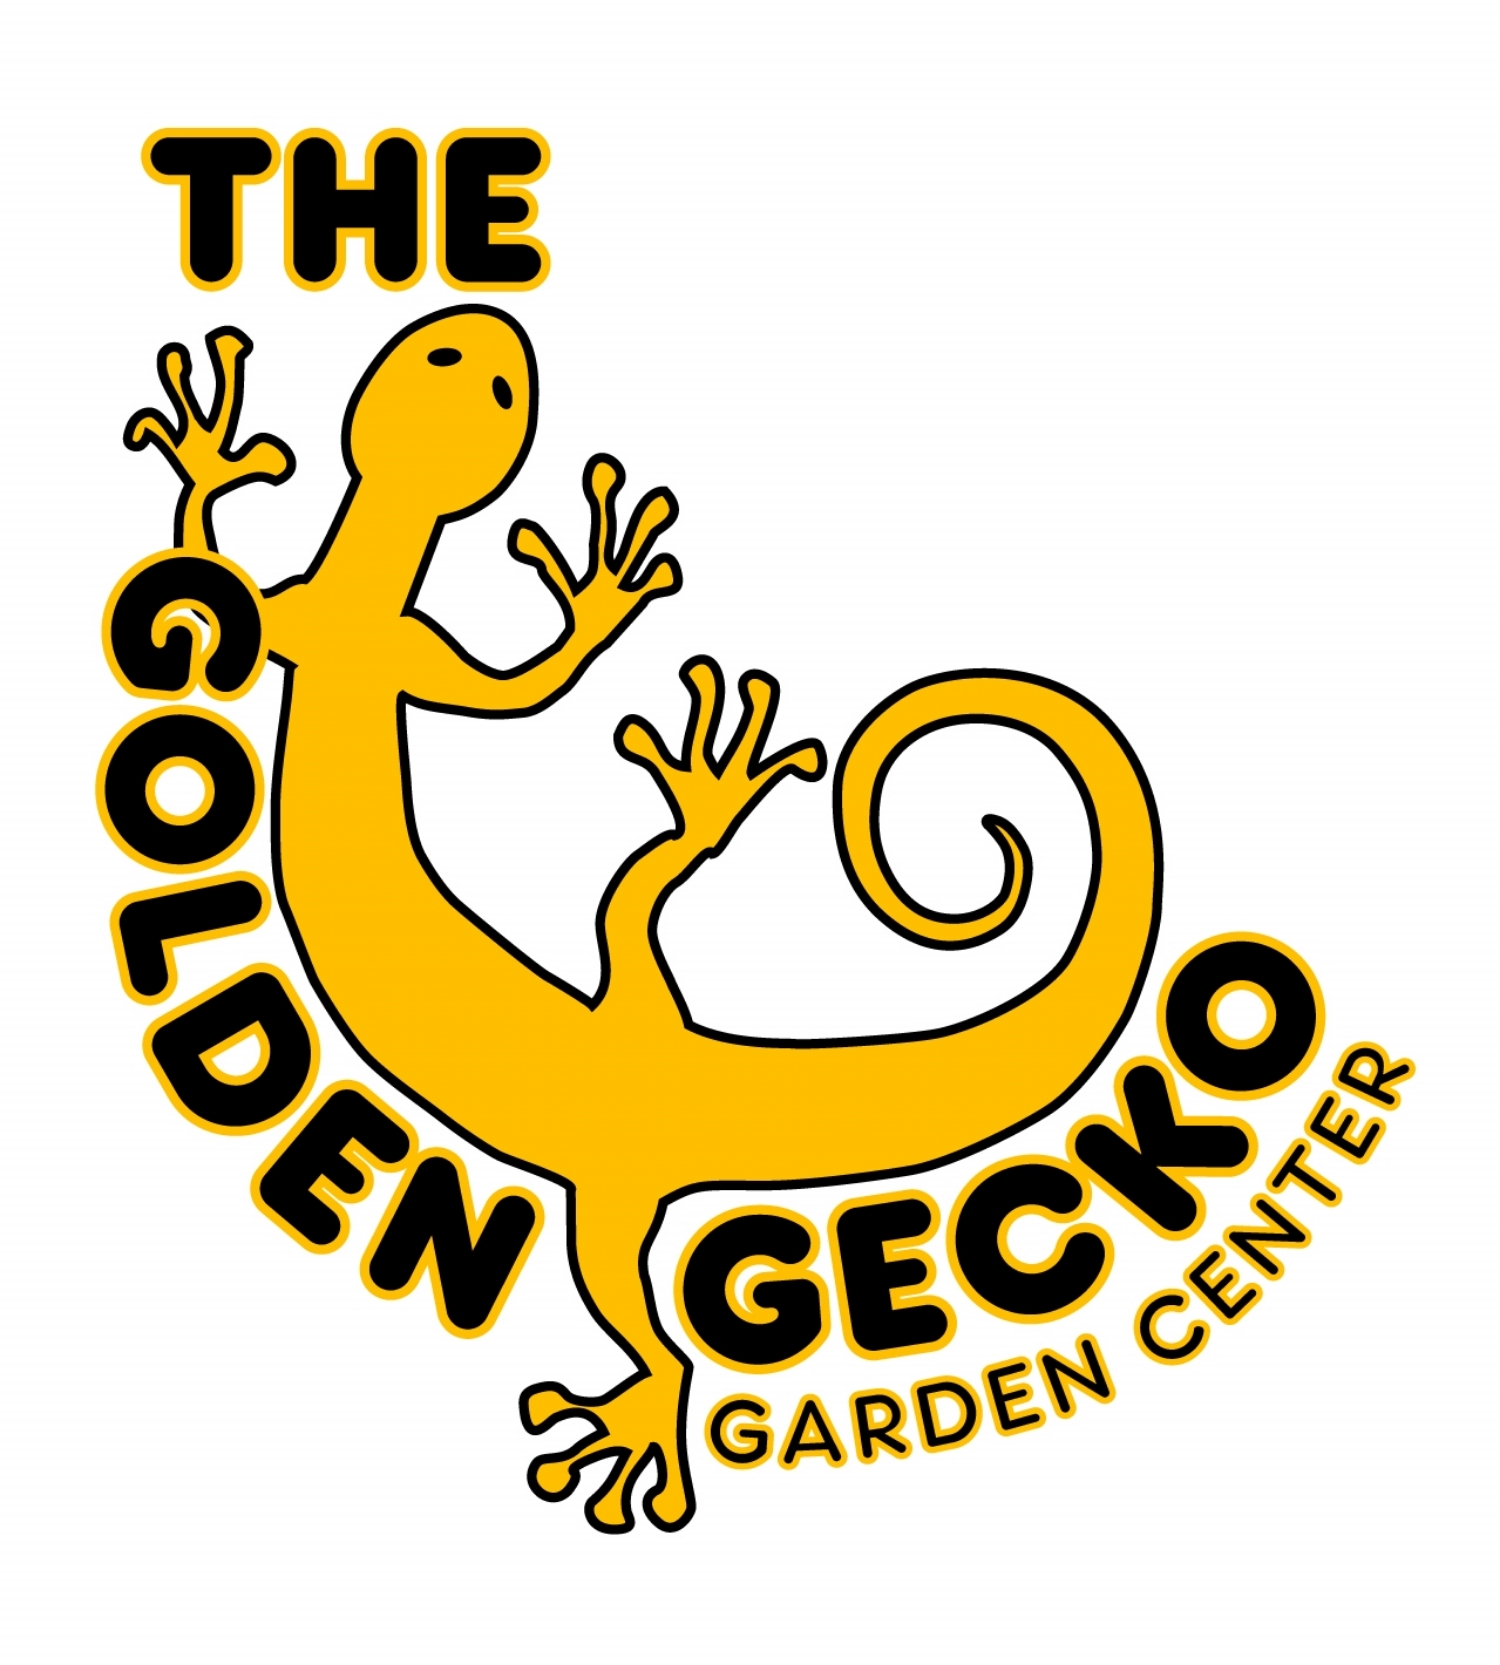 The Golden Gecko Garden Center